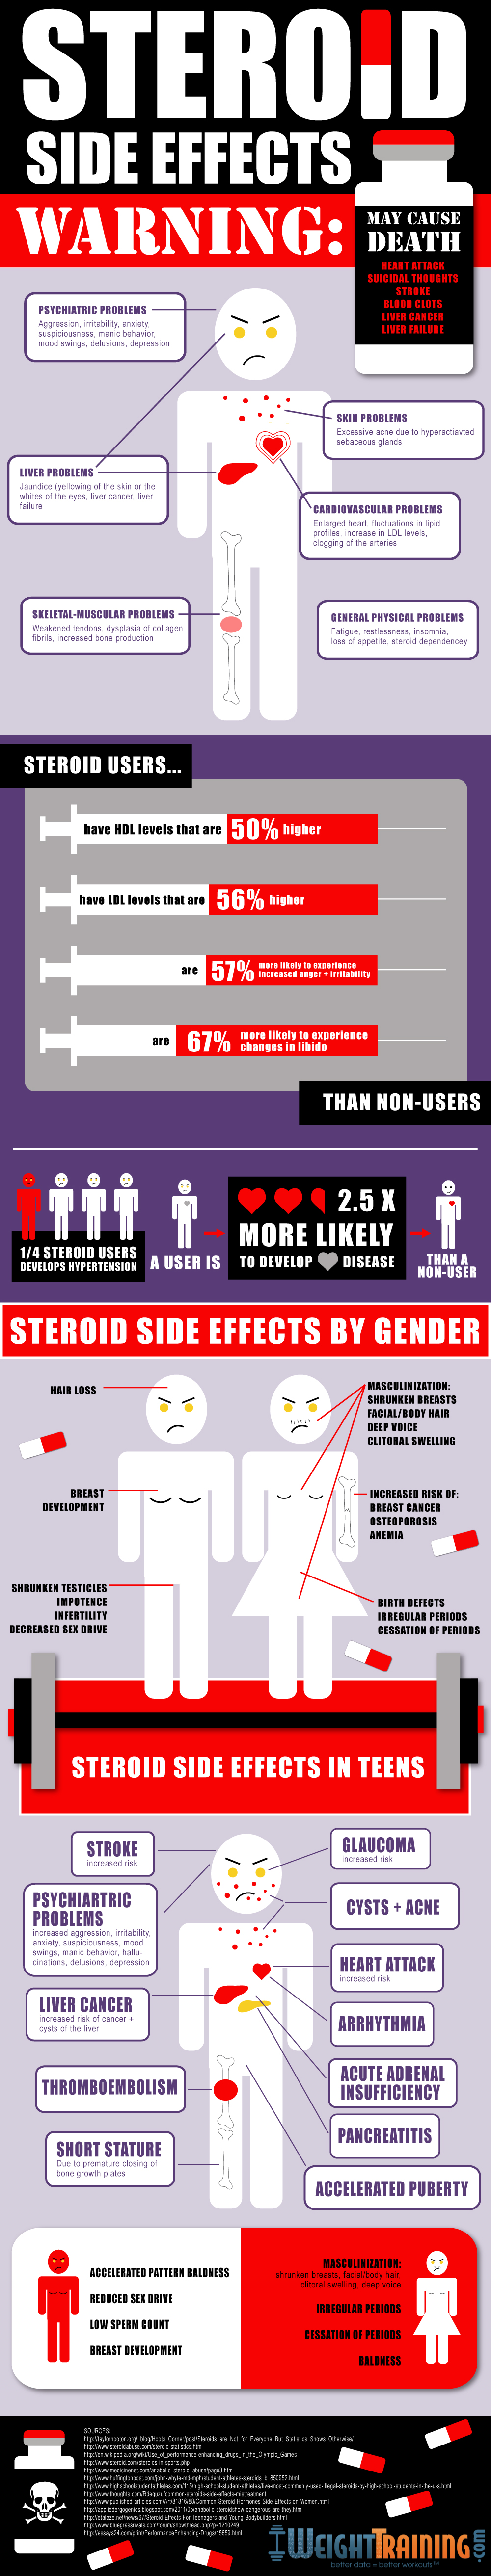 Steroids Side Effects